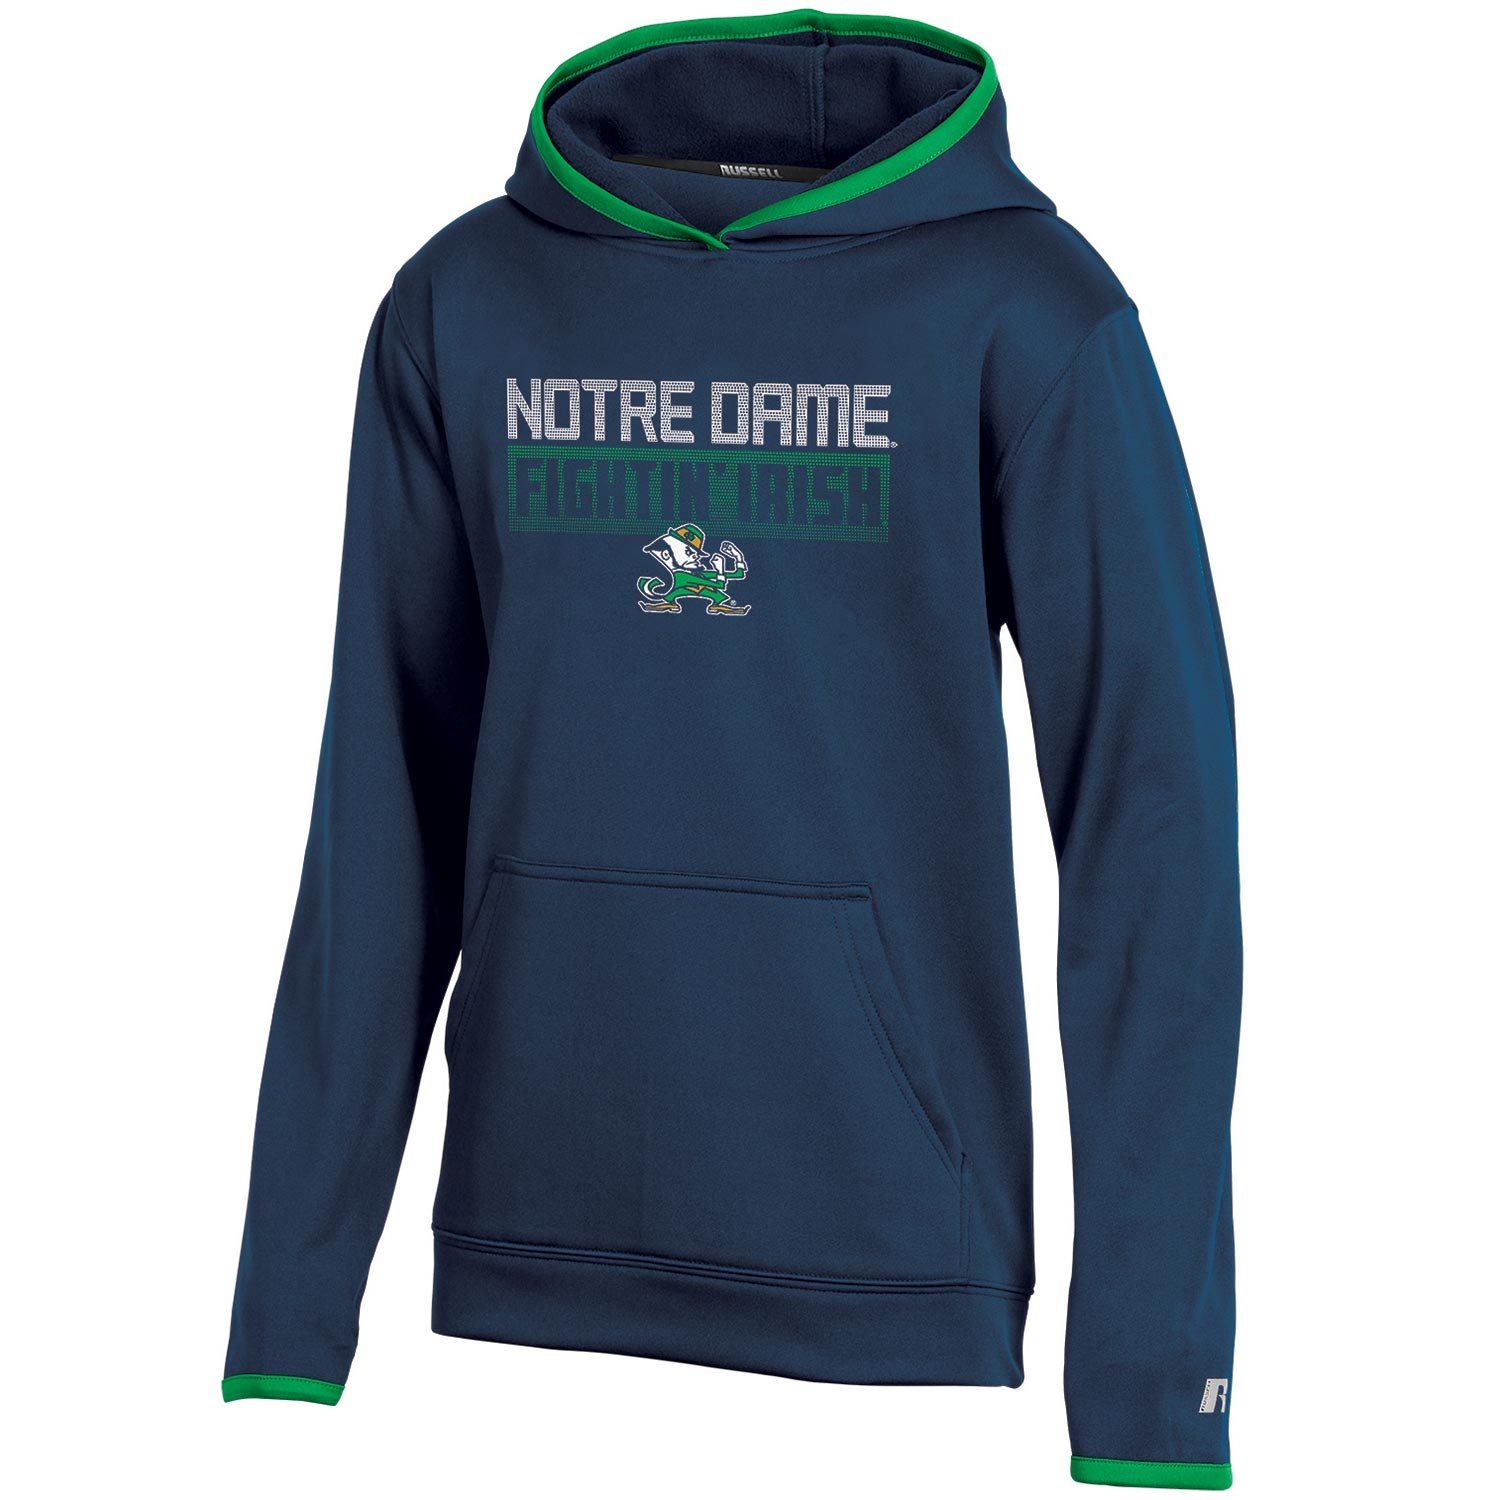 Youth Russell Navy Notre Dame Fighting Irish Pullover Hoodie